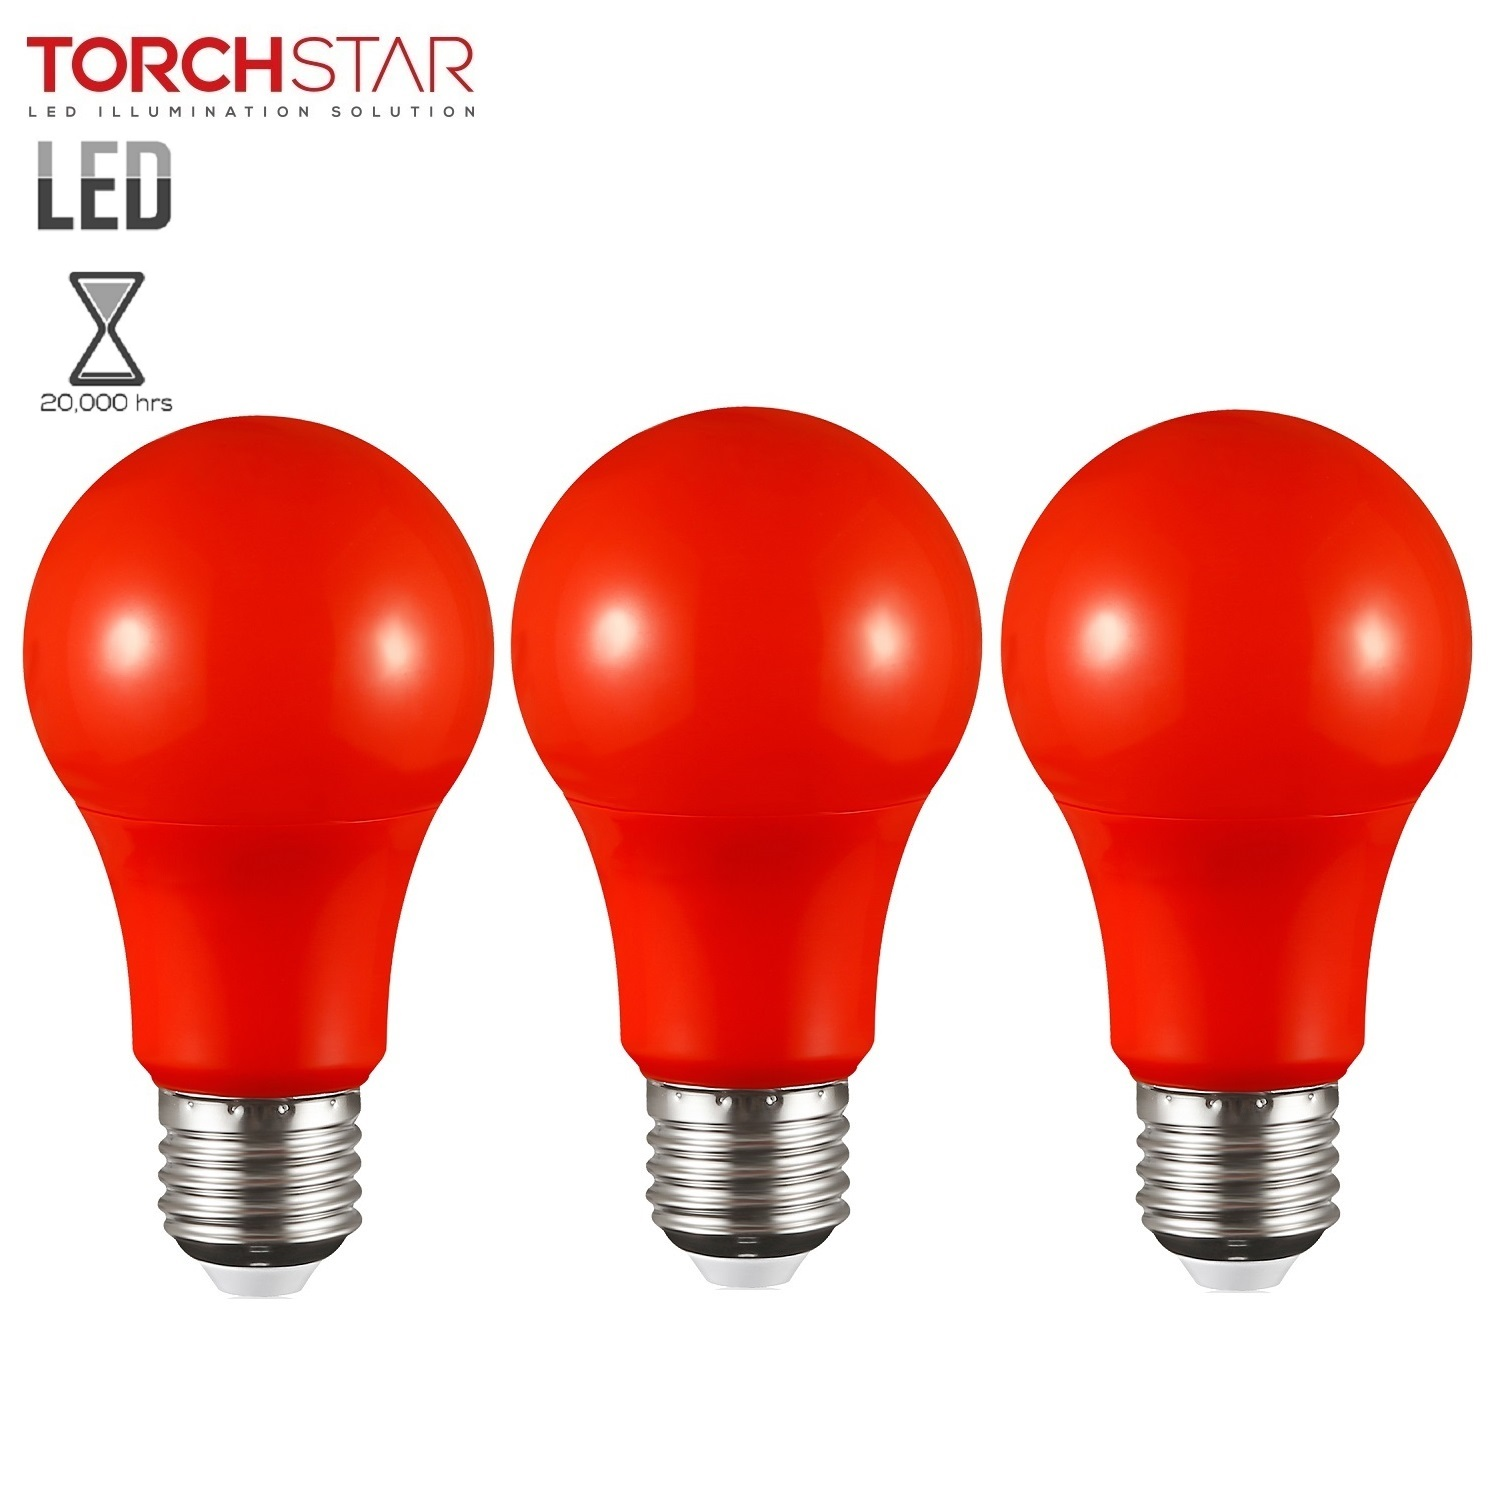 TORCHSTAR Pack of 3, Red LED A19 Colored Light Bulb, E26 Medium Base, Dwelling Environment & Melatonin Friendly, 7W (50W Equiv.), 3 Years Warranty, 20,000hrs, Non-Dimmable